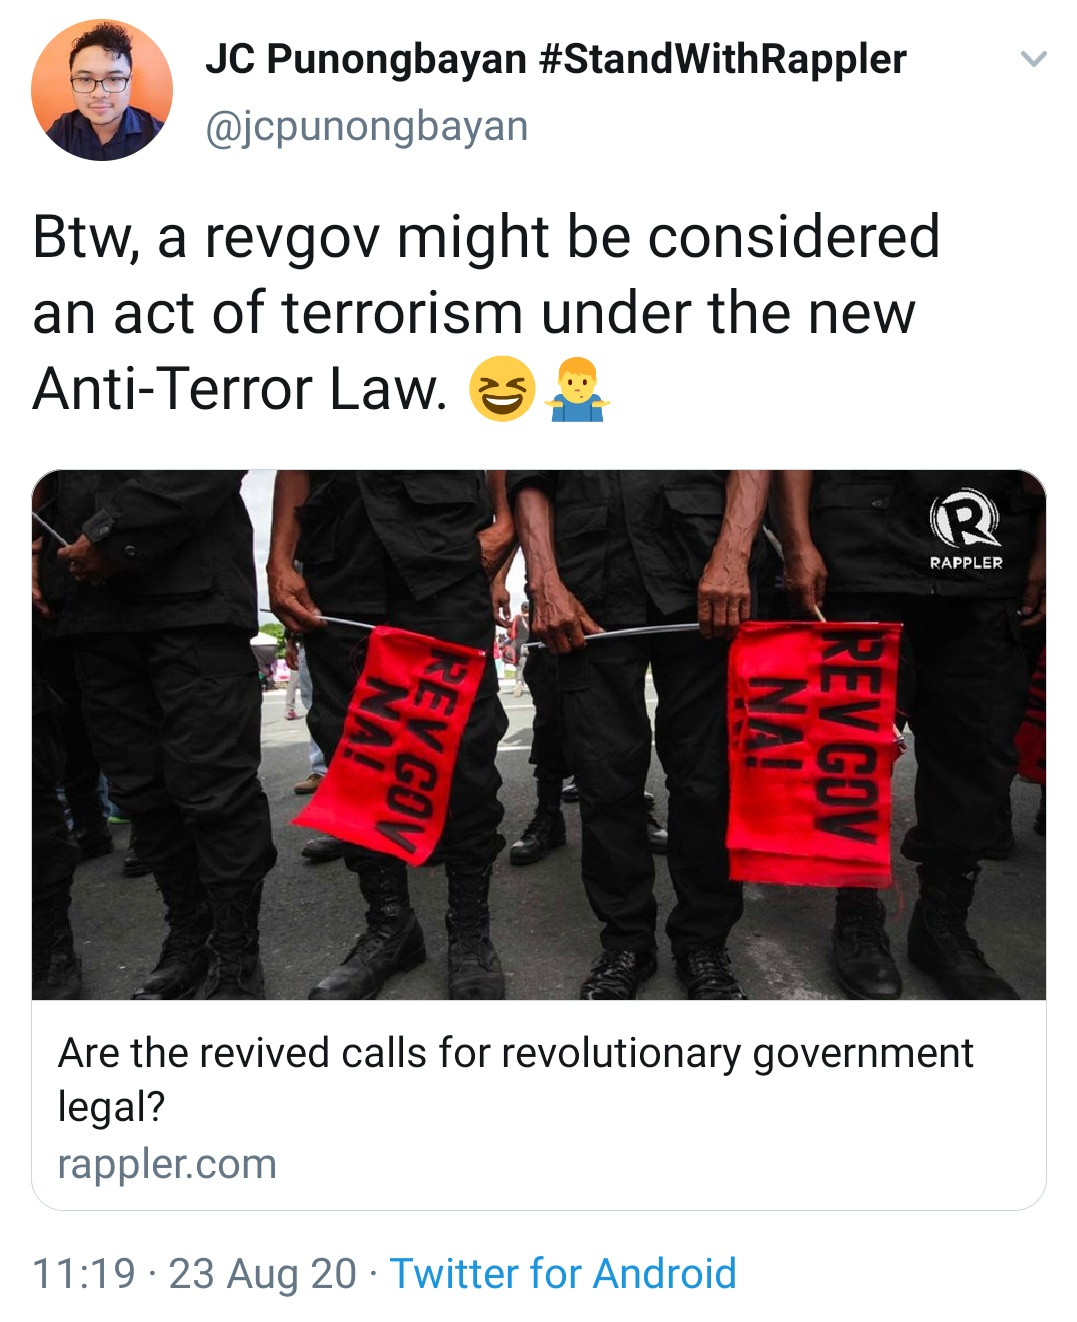 Btw, a revgov might be considered an act of terrorism under the new Anti-Terror Law.